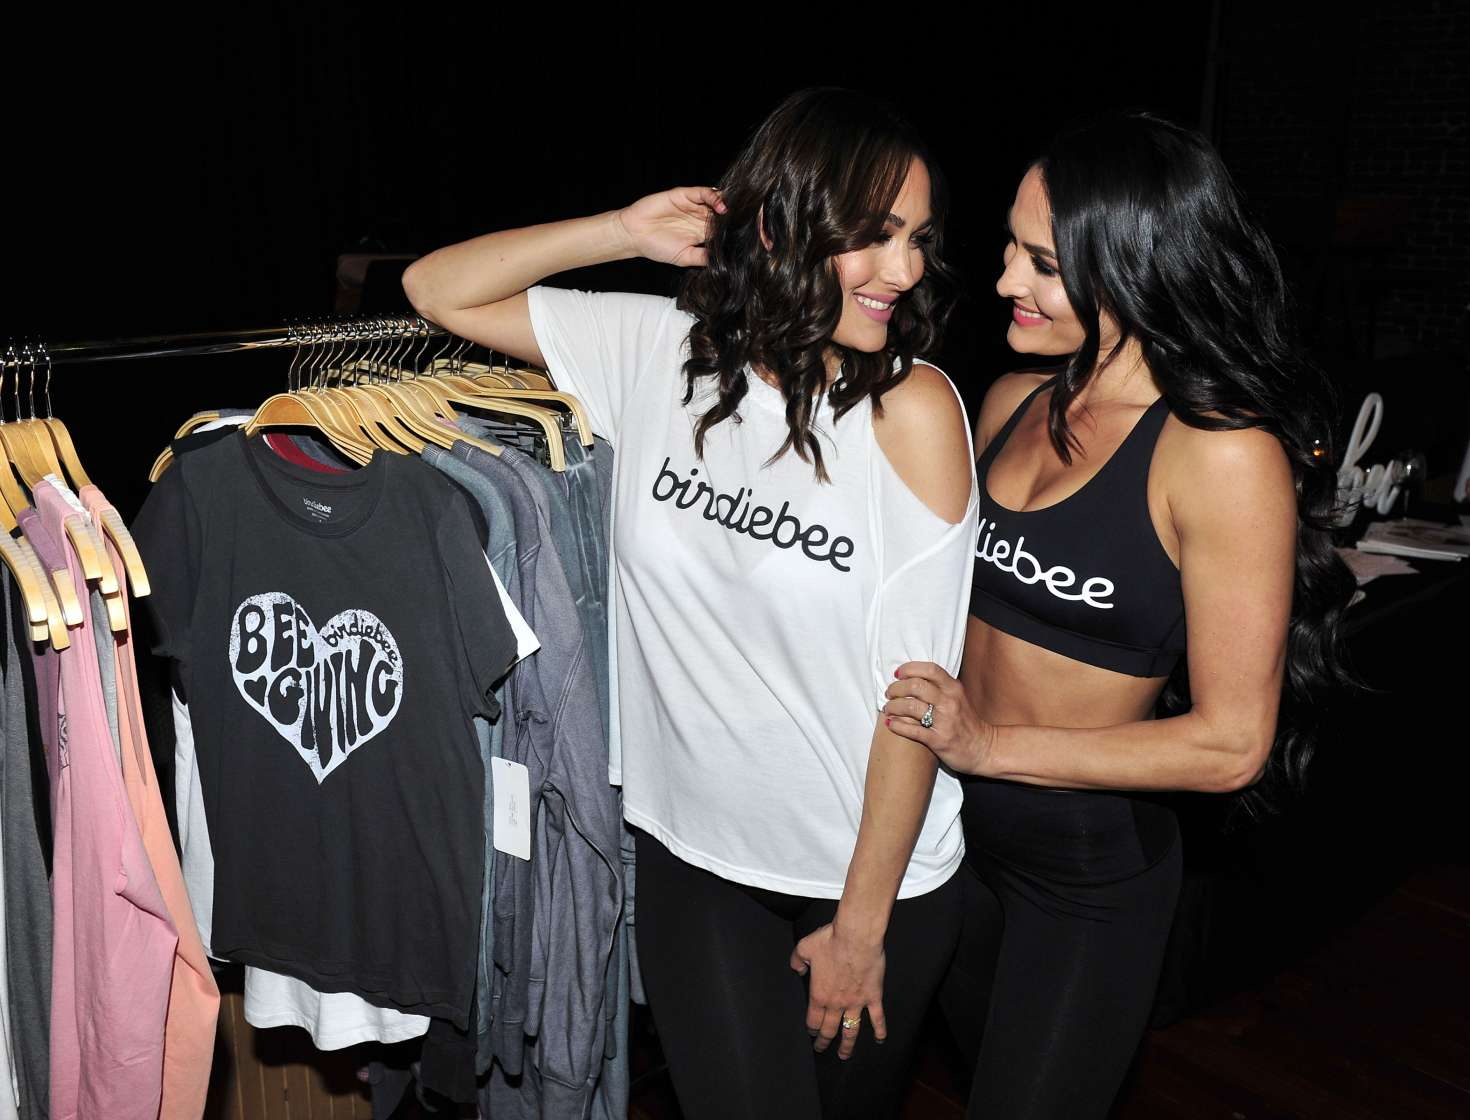 Brie Bella 2017 : Brie and Nikki Bella: Birdiebee brand of clothing launch -05